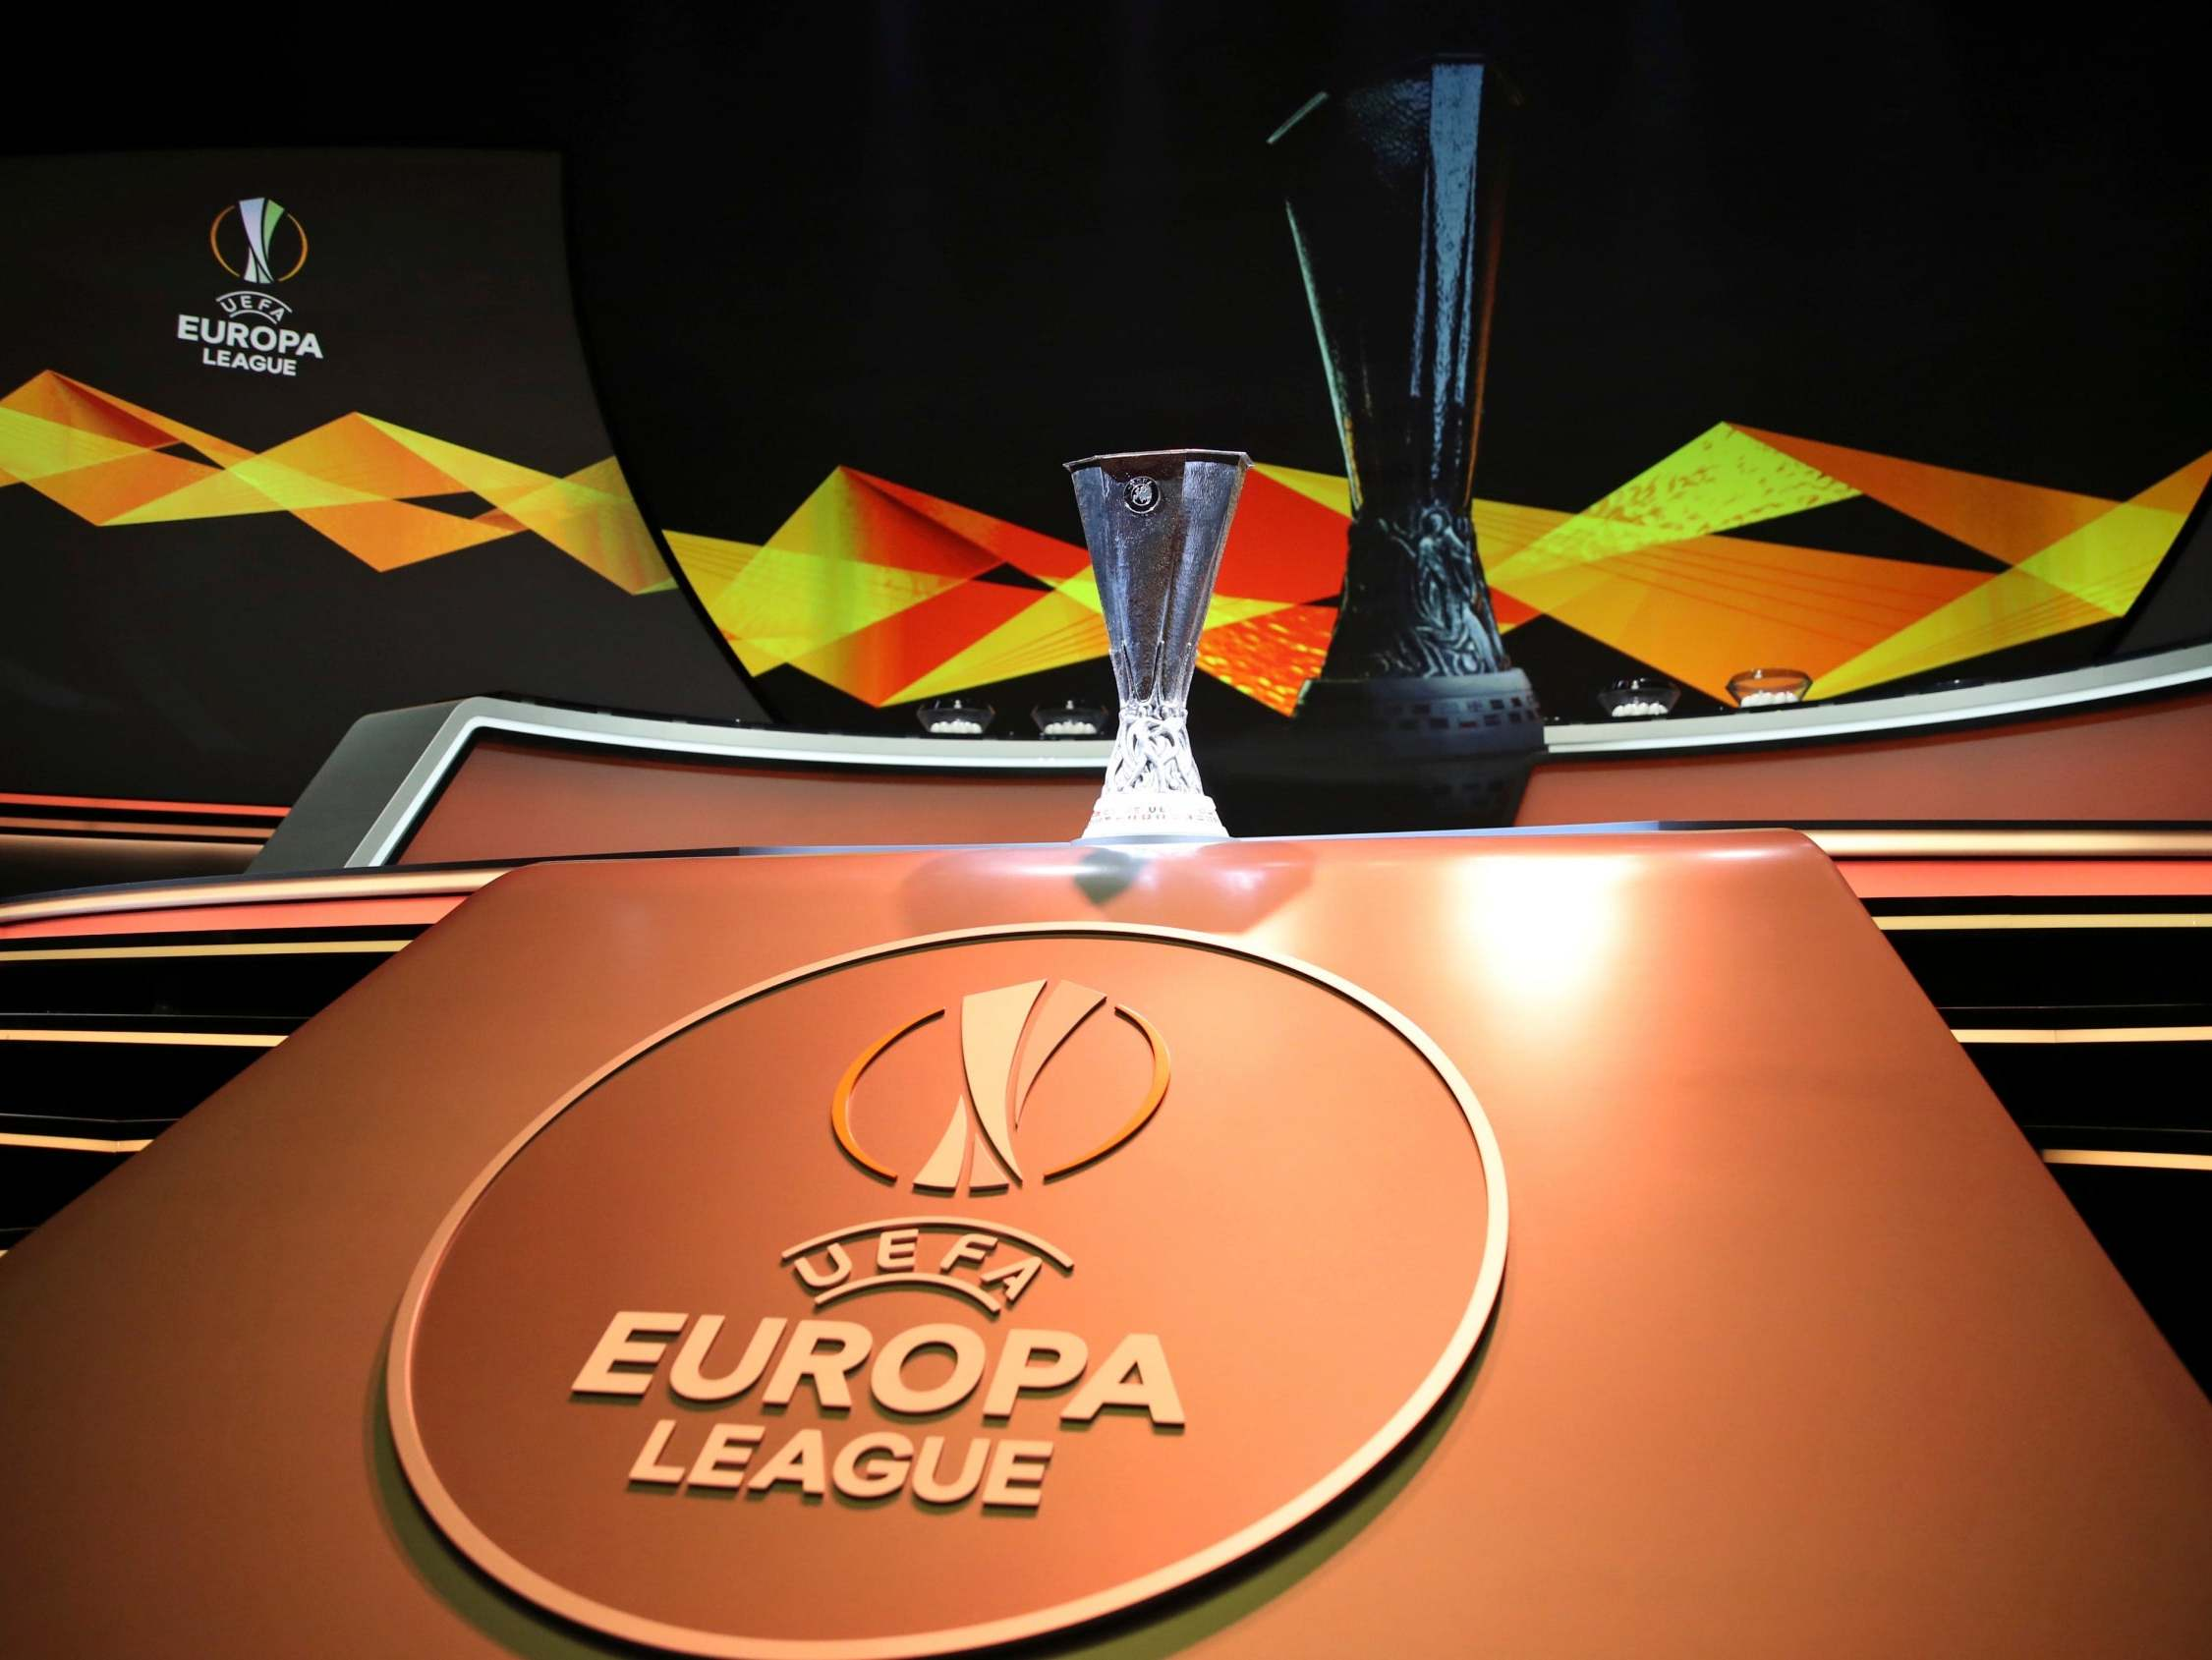 Europa League Draw Group 2019